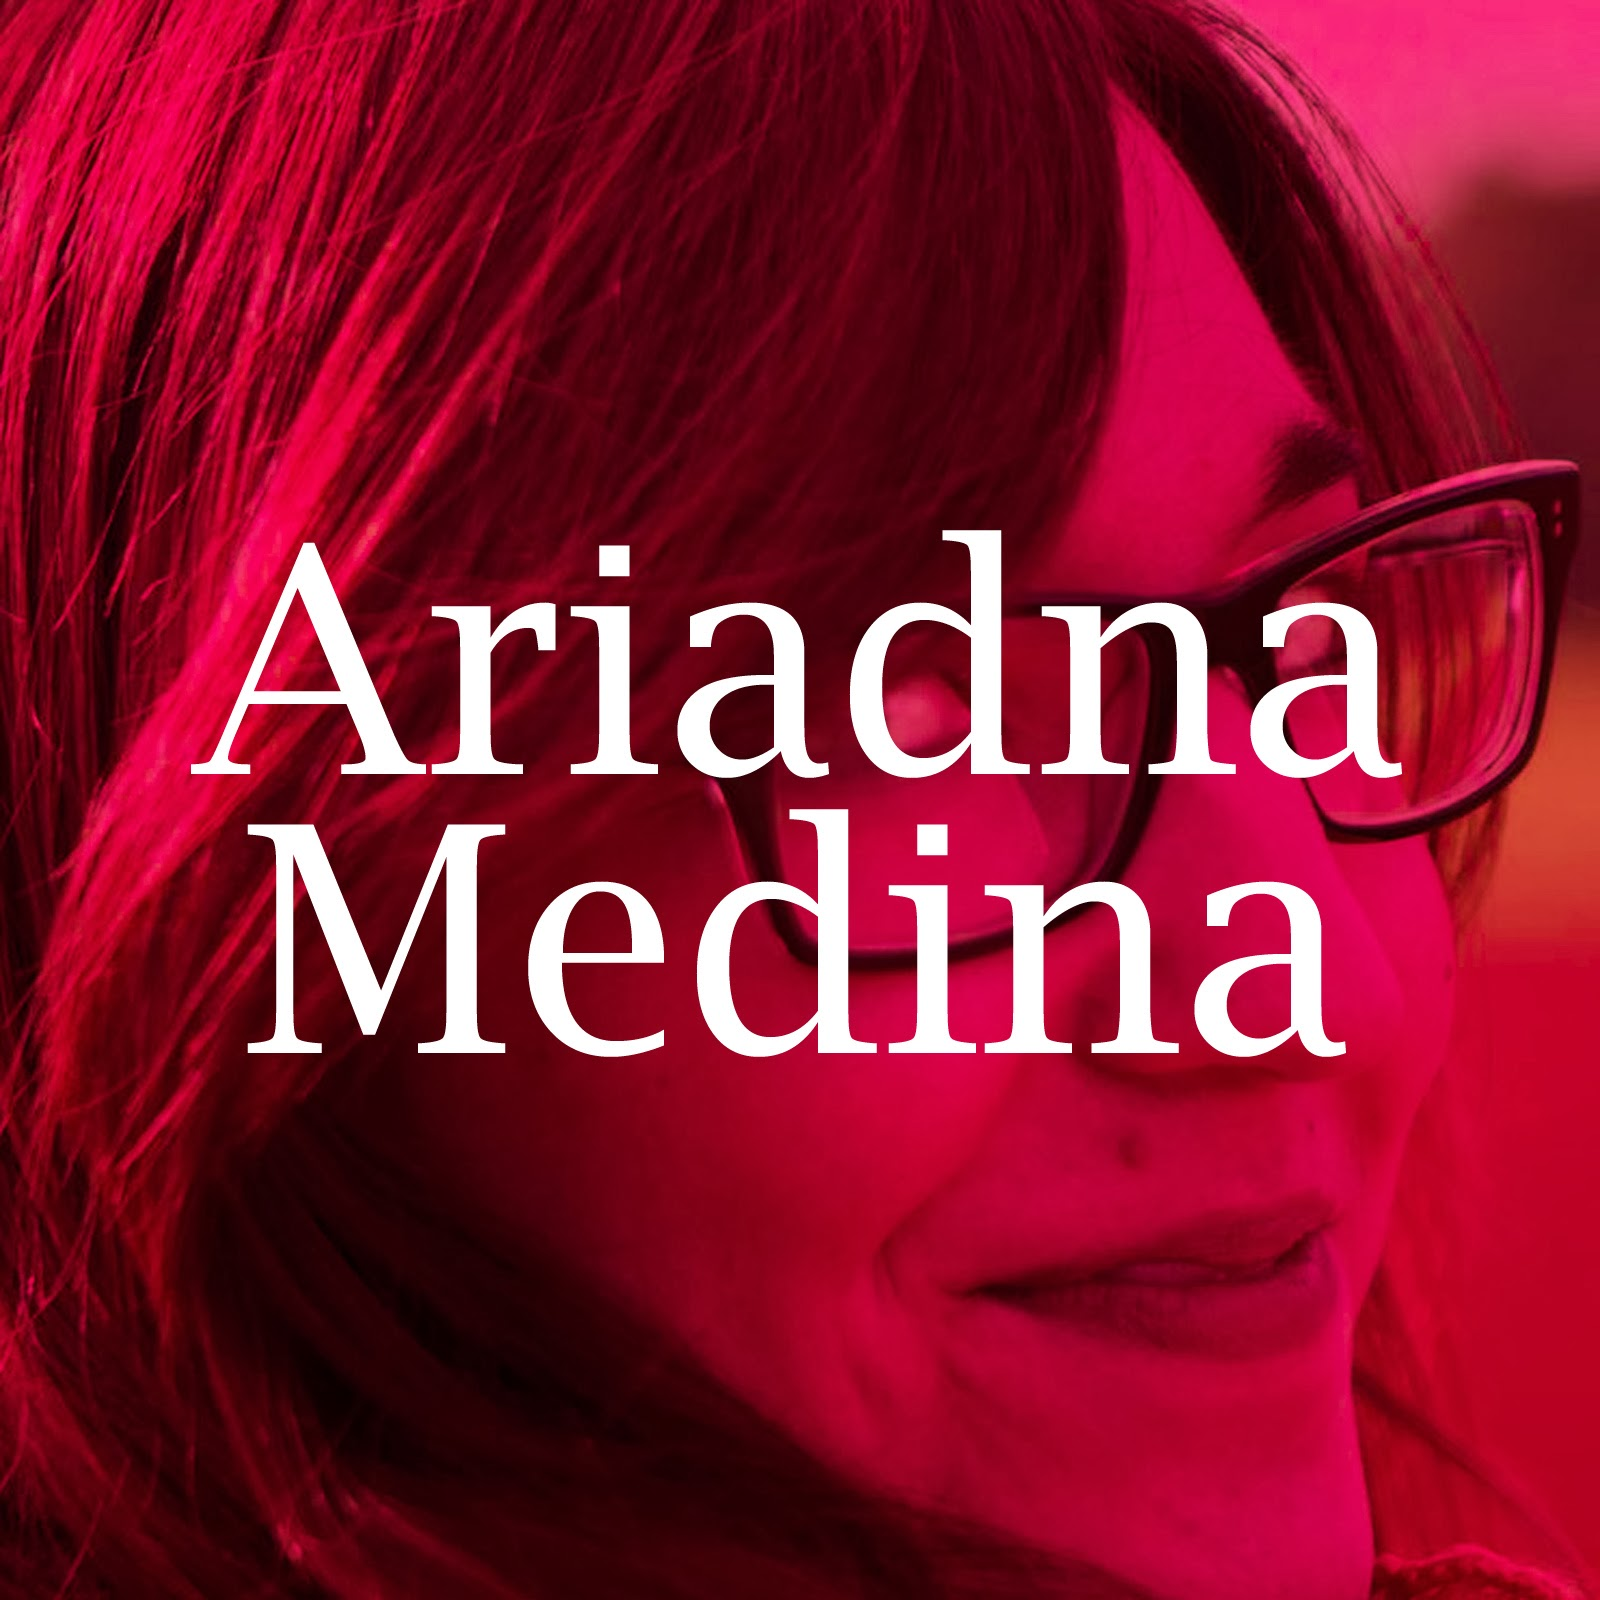 About Ariadna